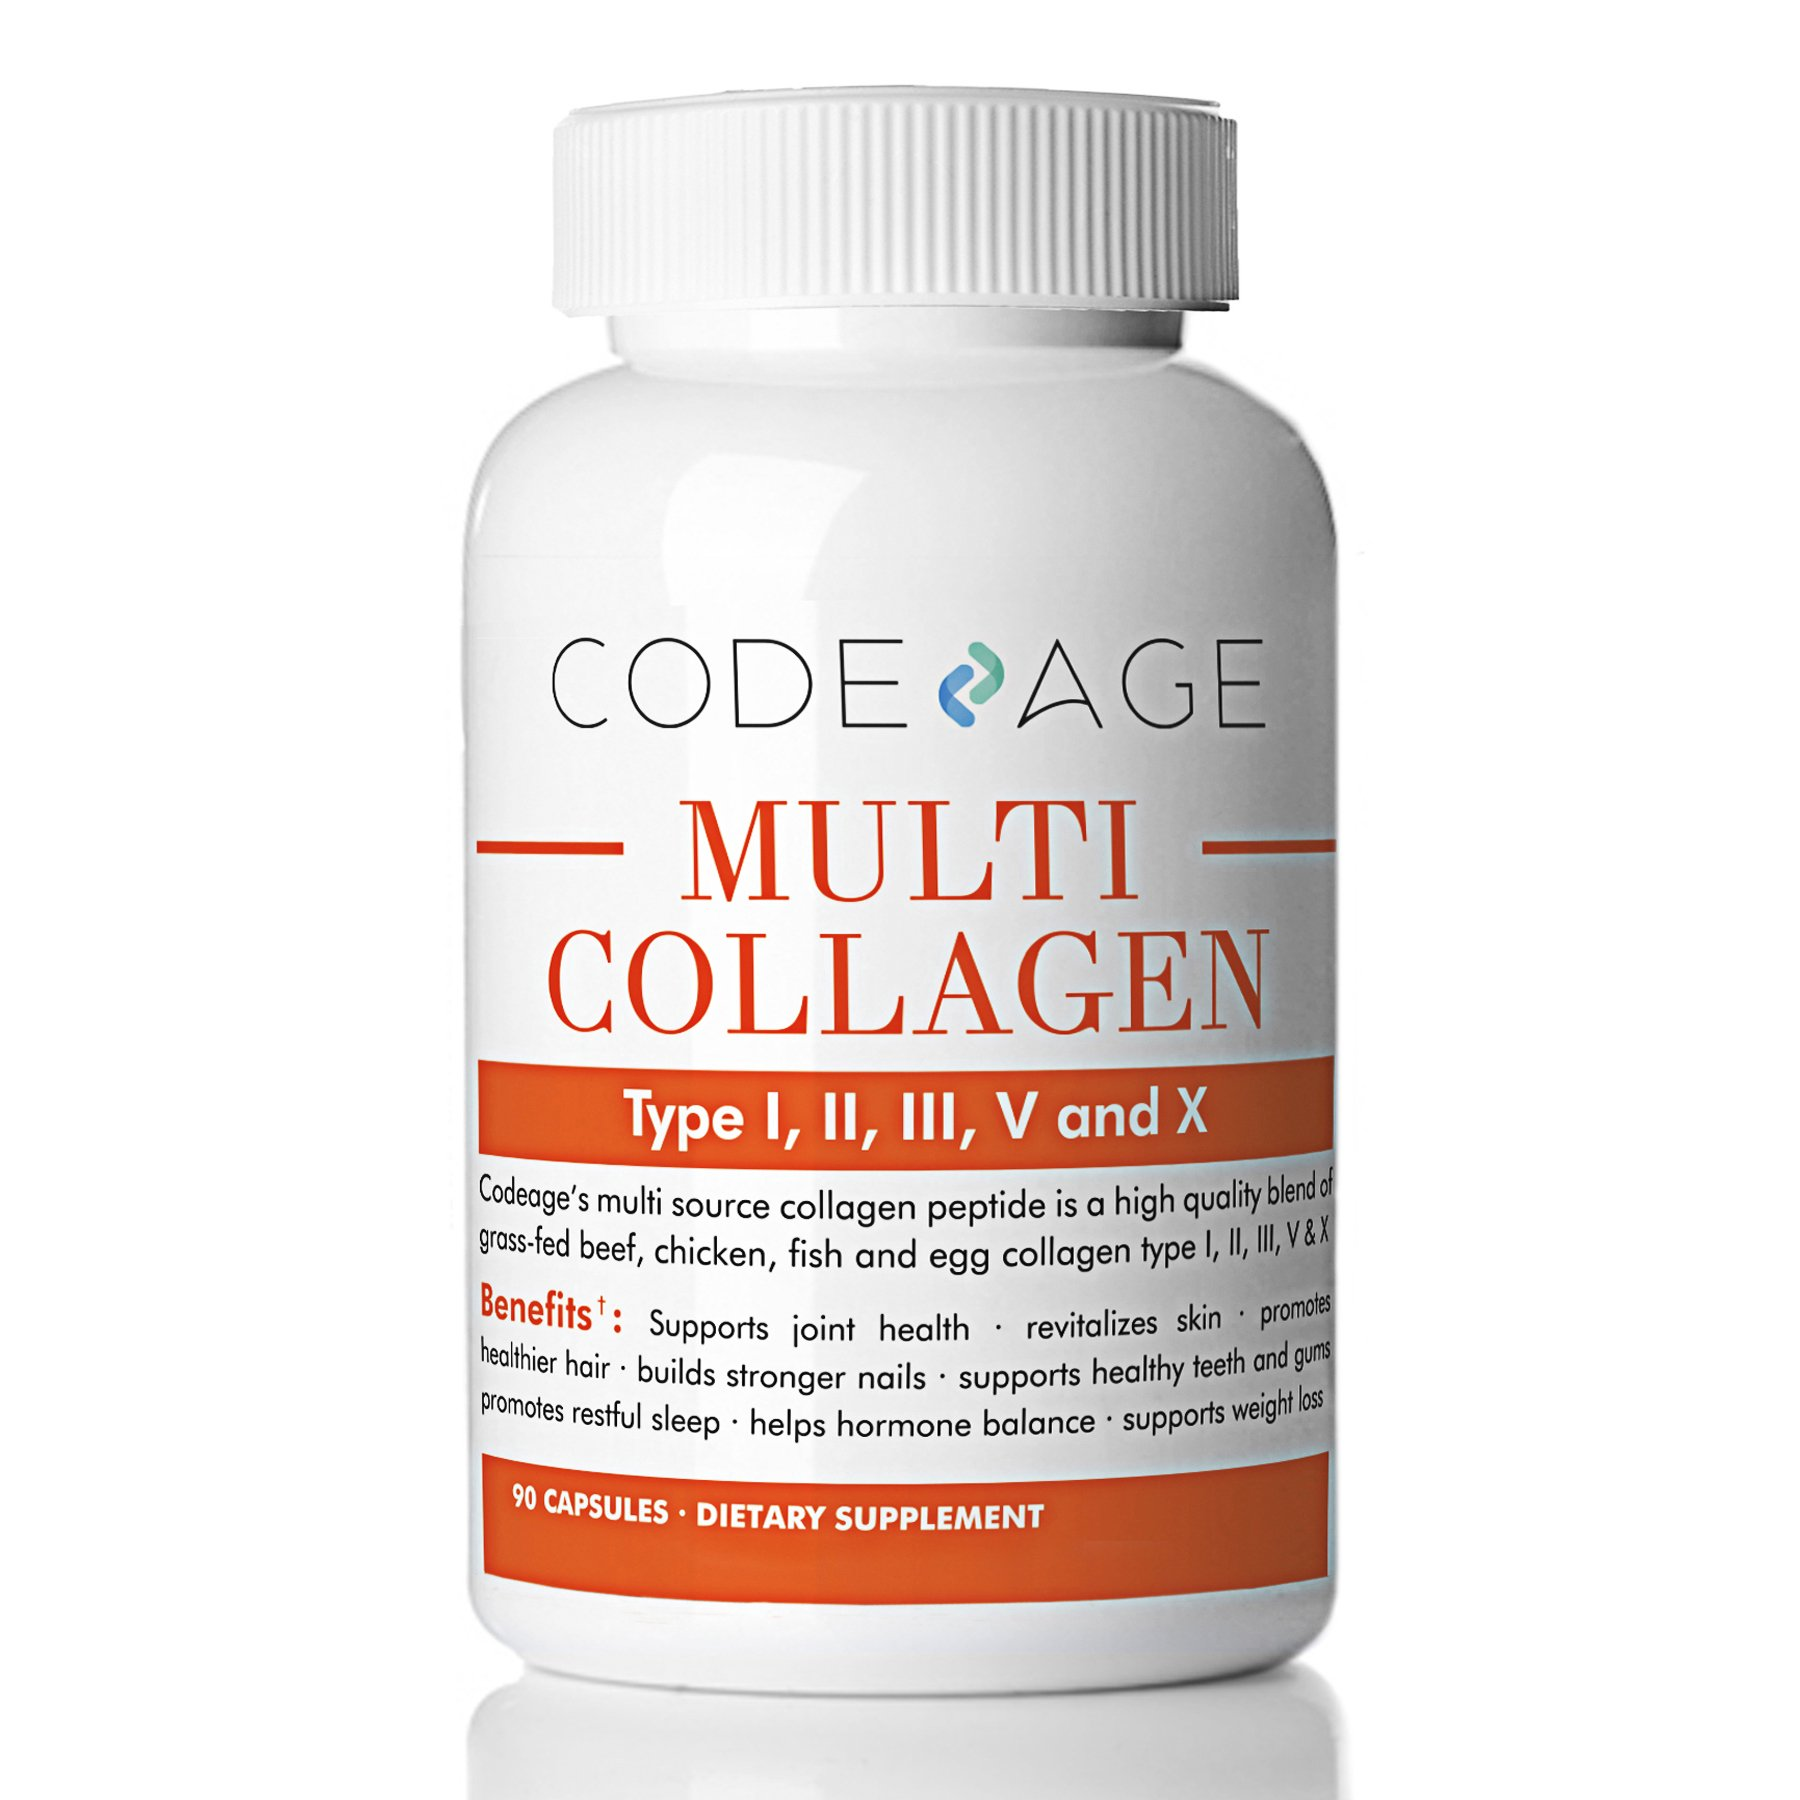 Multi-Collagen Protein Capsules - 90 Count - Type I, II, III, V, X - Grass-Fed - All-In-One Super Bone Broth + Collagen - High Quality Blend of Grass-Fed Beef, Chicken, Wild Fish and Eggshell Collagen